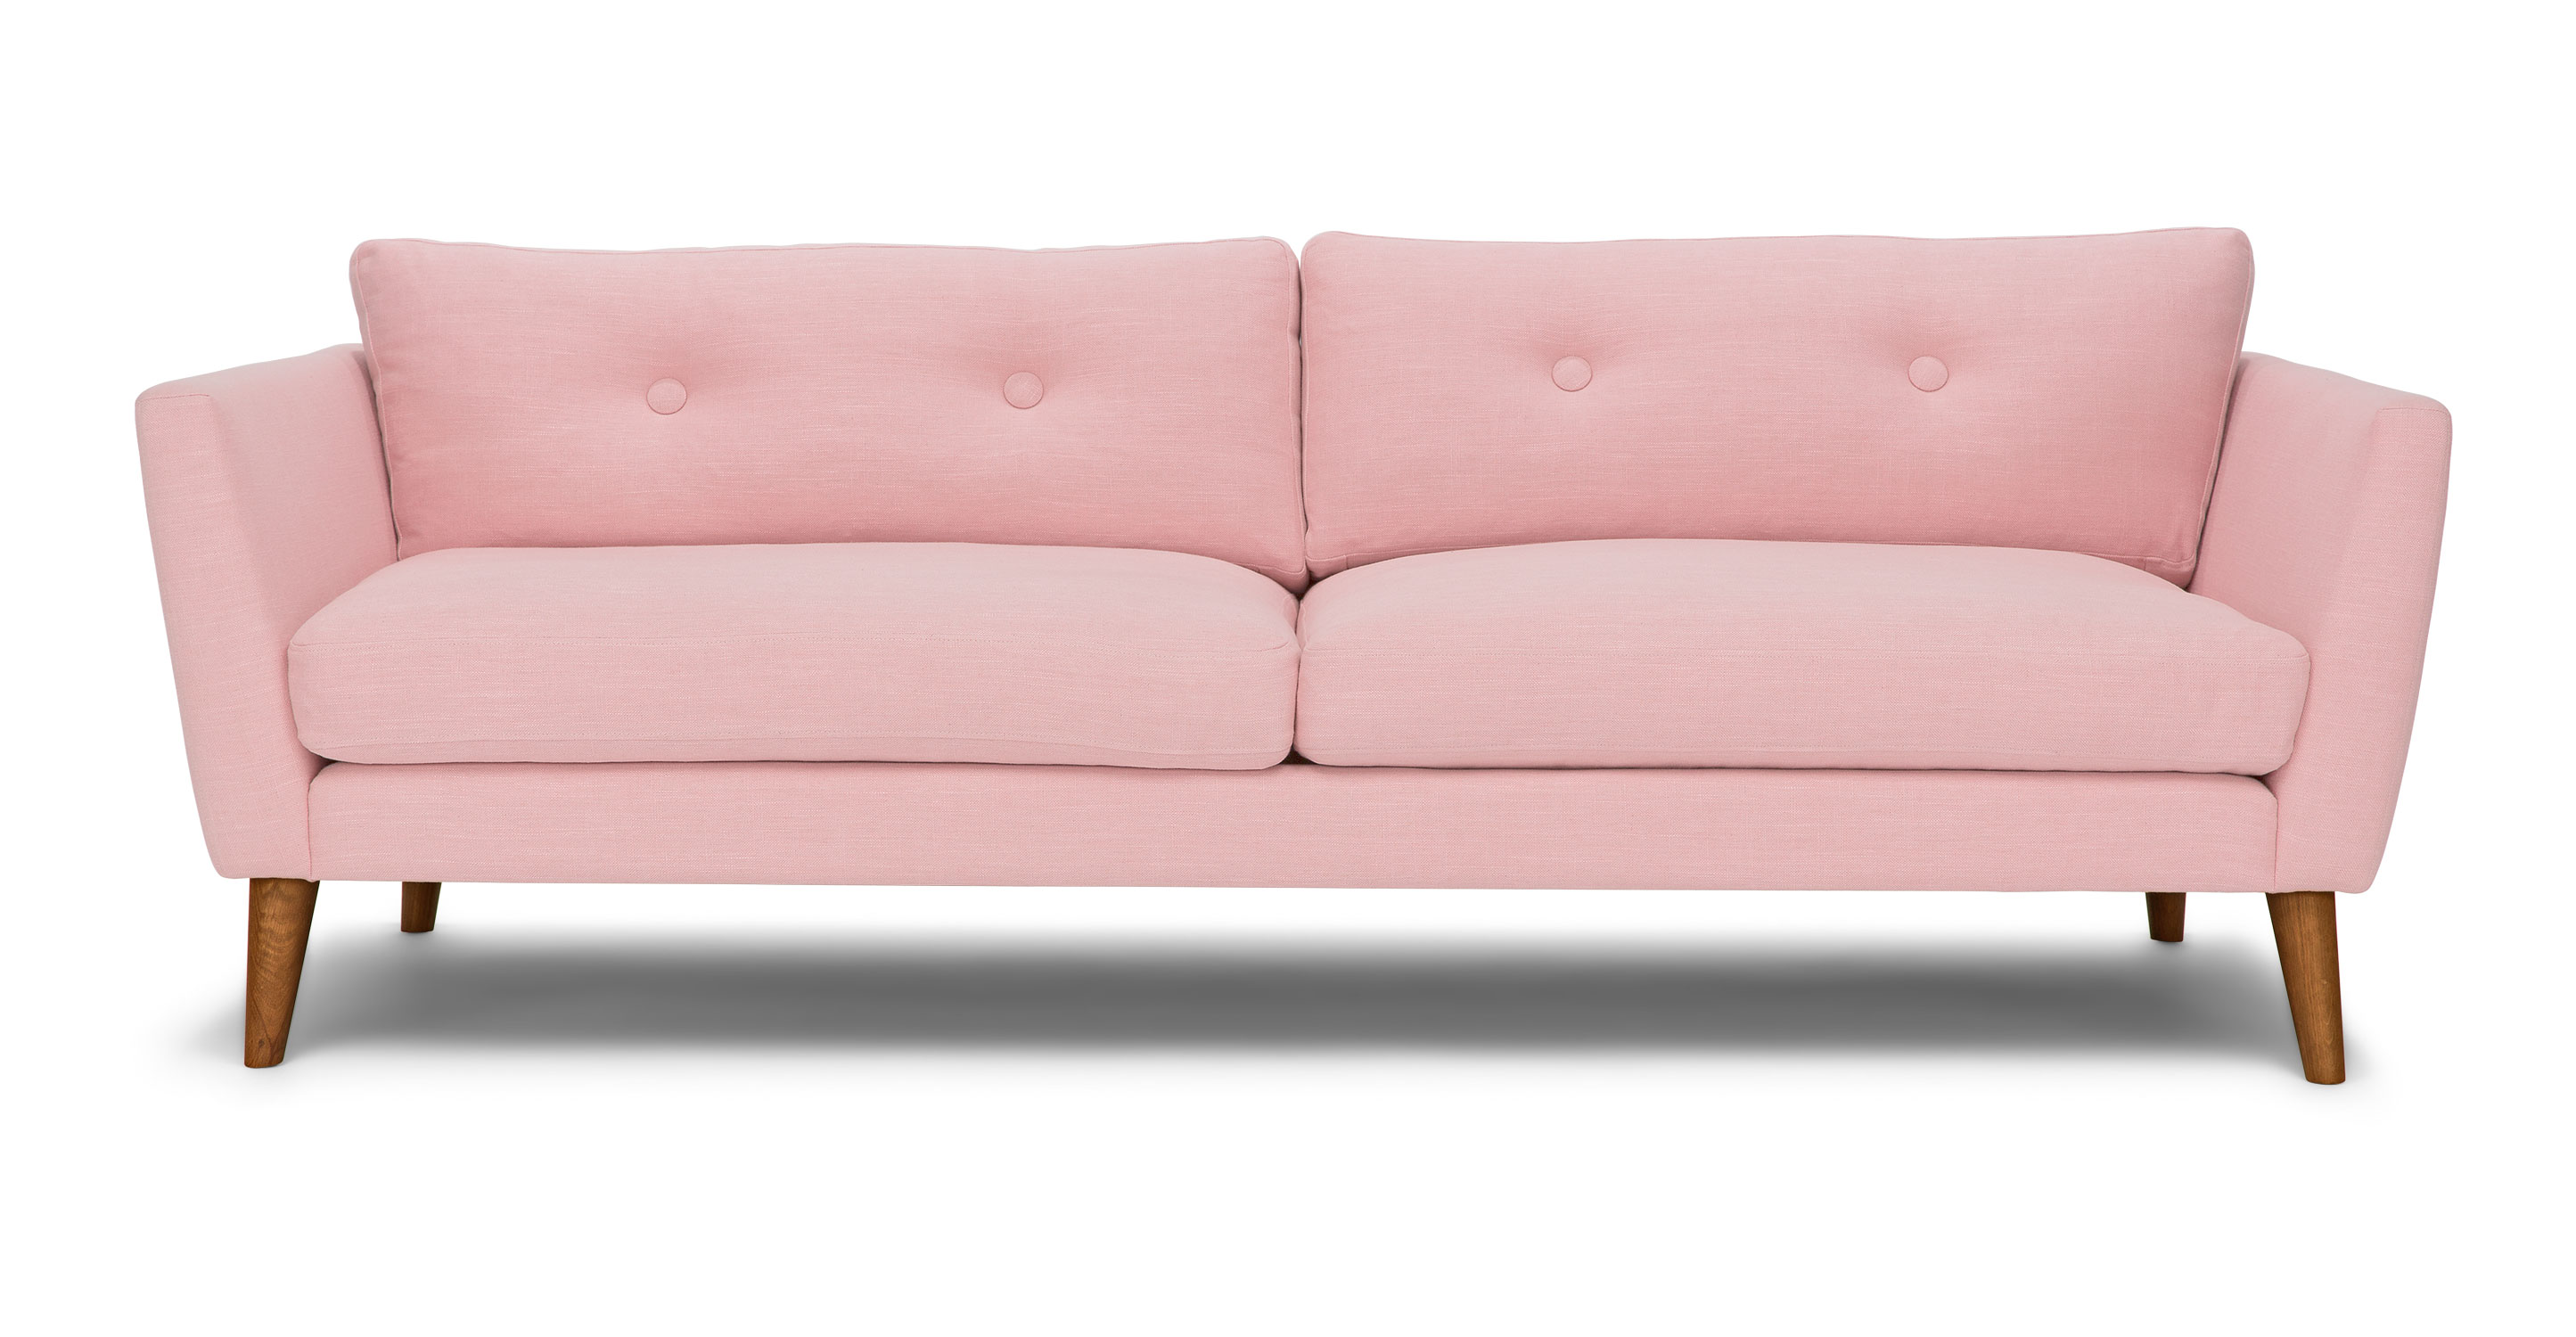 emil quartz rose sofa sofas article modern mid. Black Bedroom Furniture Sets. Home Design Ideas